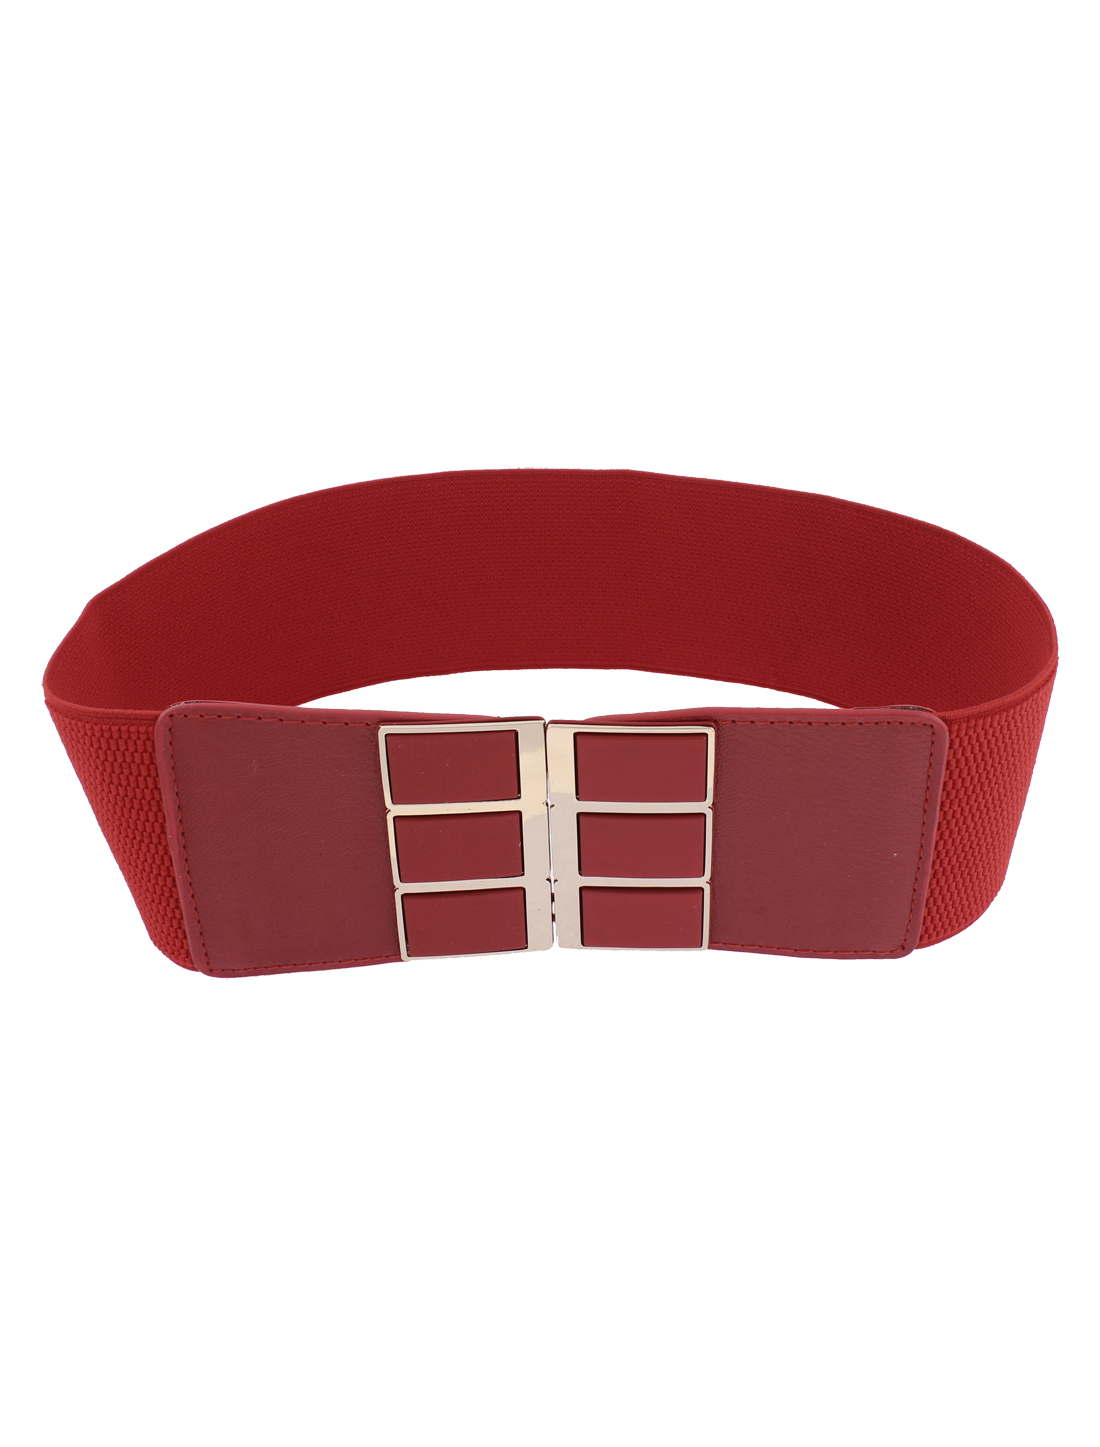 Adjustable Elastic Waistband Waist Belt 3 Inch Wide Red